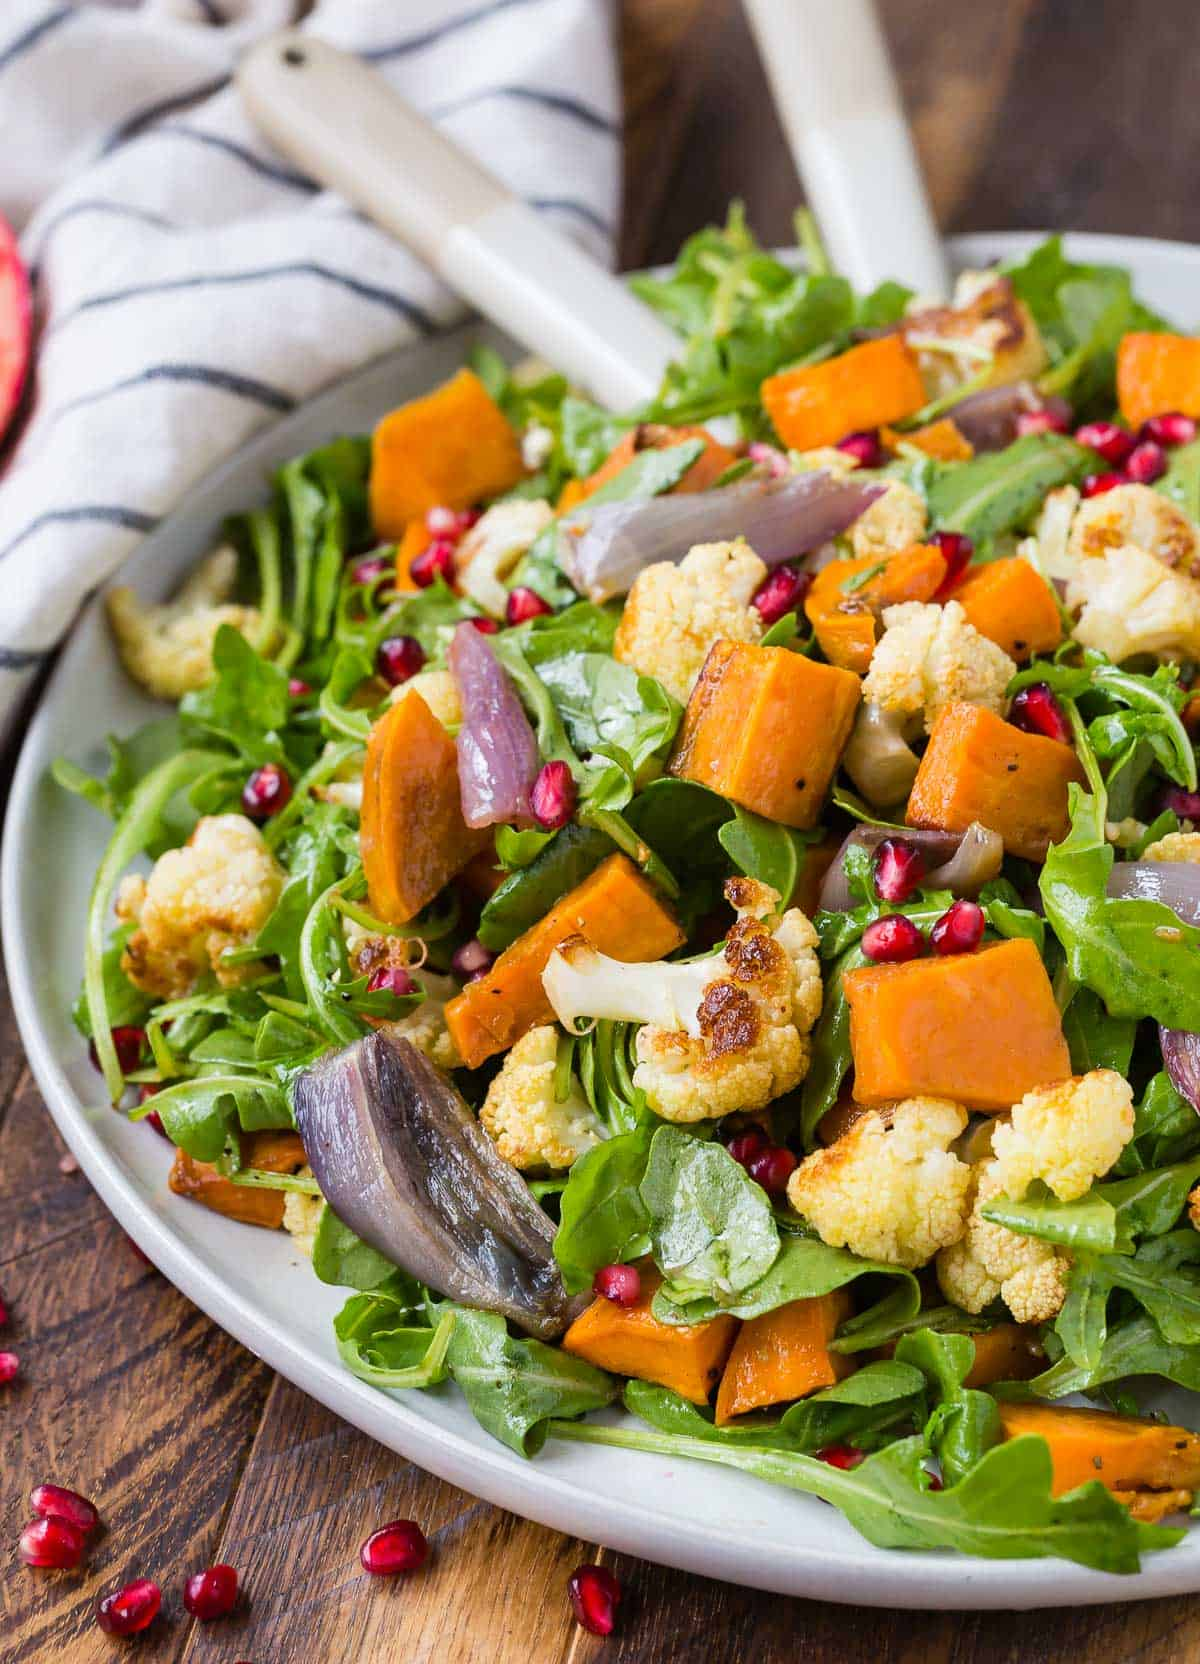 Salad with roasted cauliflower, pomegranate arils, and sweet potatoes.